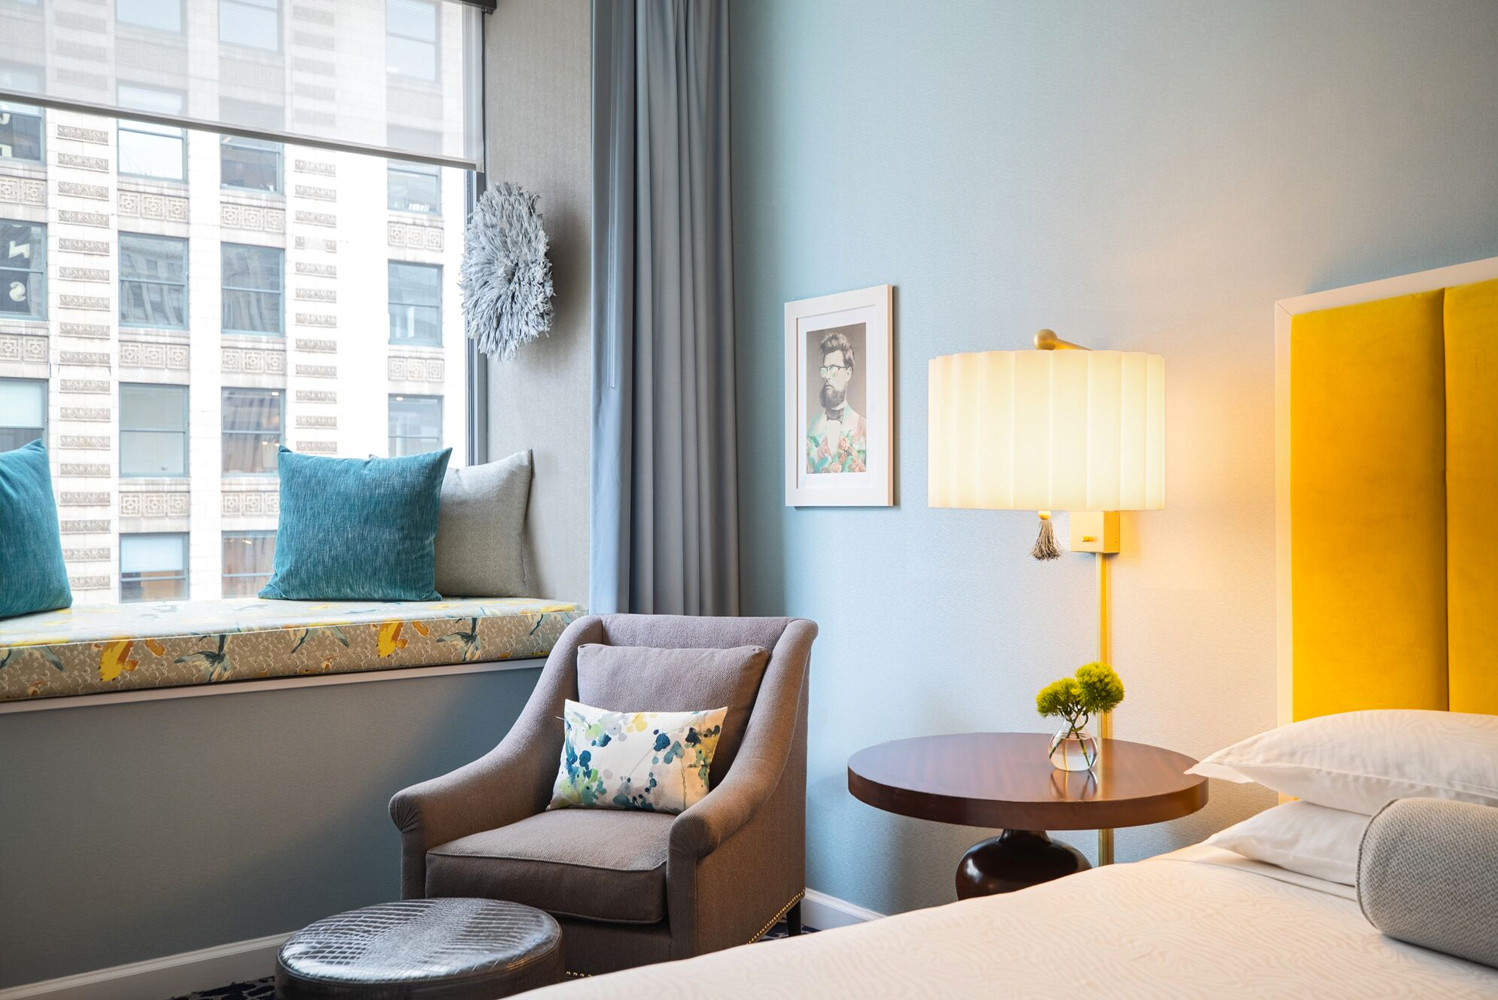 The Gettys Group was involved in the renovation inspired by Lake Michigan and the development along the Chicago Riverwalk, visible from the hotel's window seats.